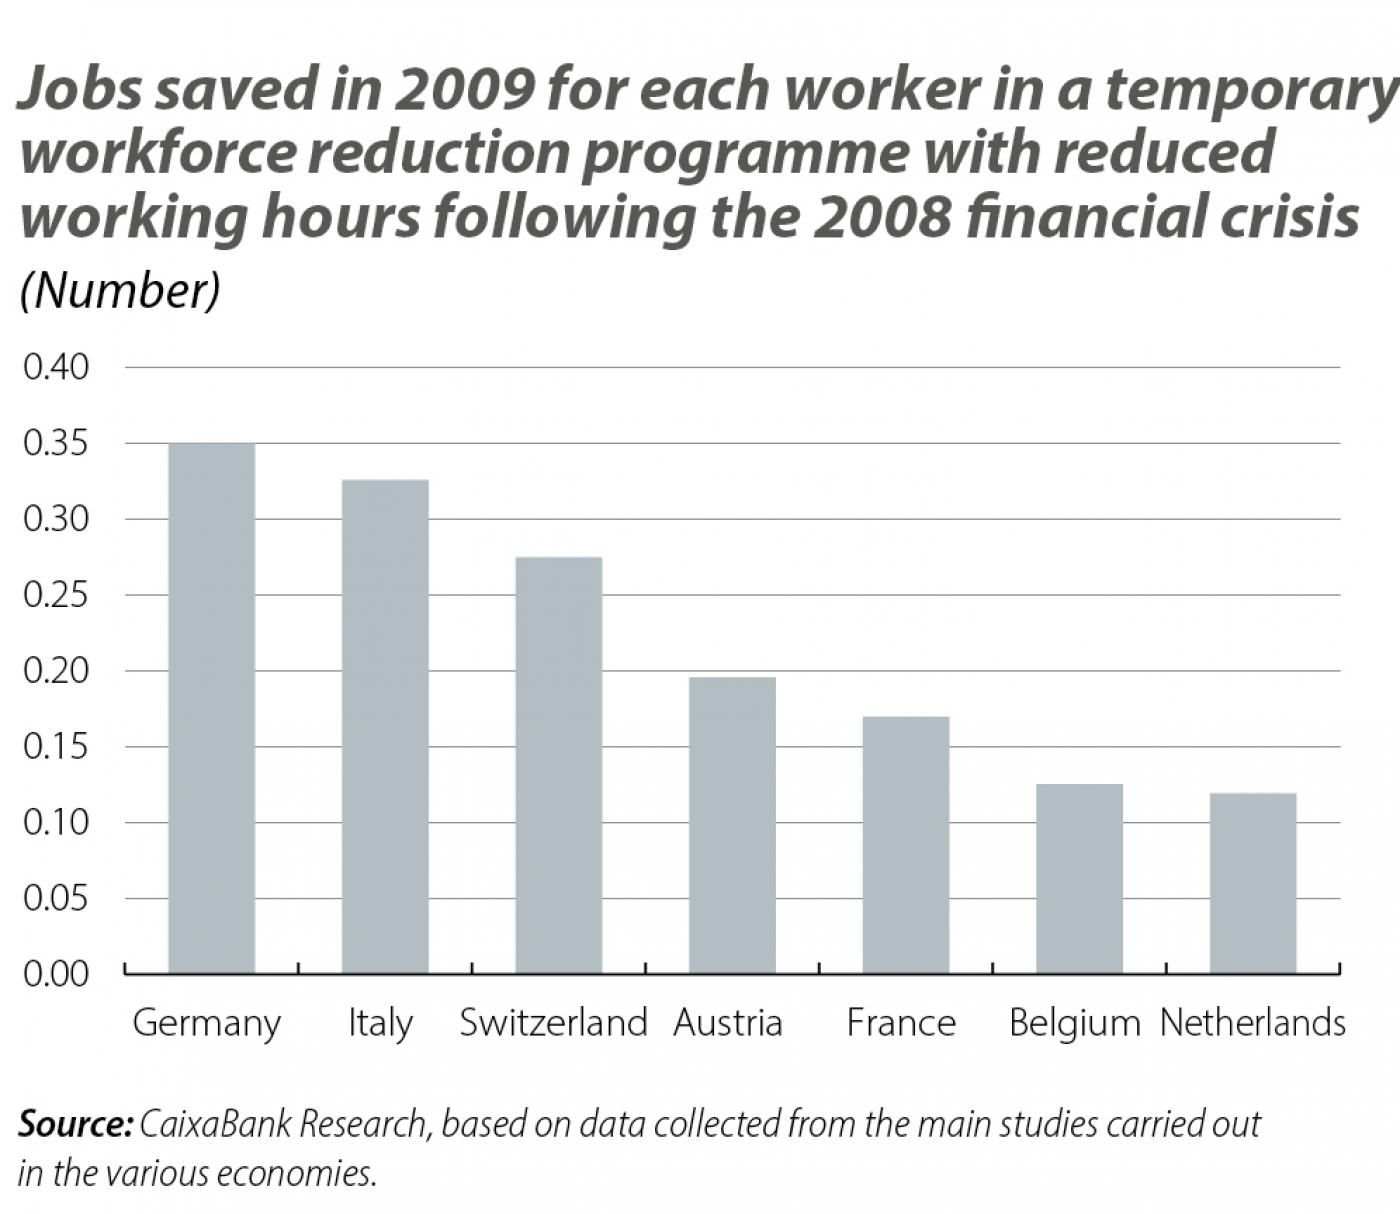 Jobs saved in 2009 for each worker in a temporary workforce reduction programme with reduce d working hours following the 2008 financial crisis